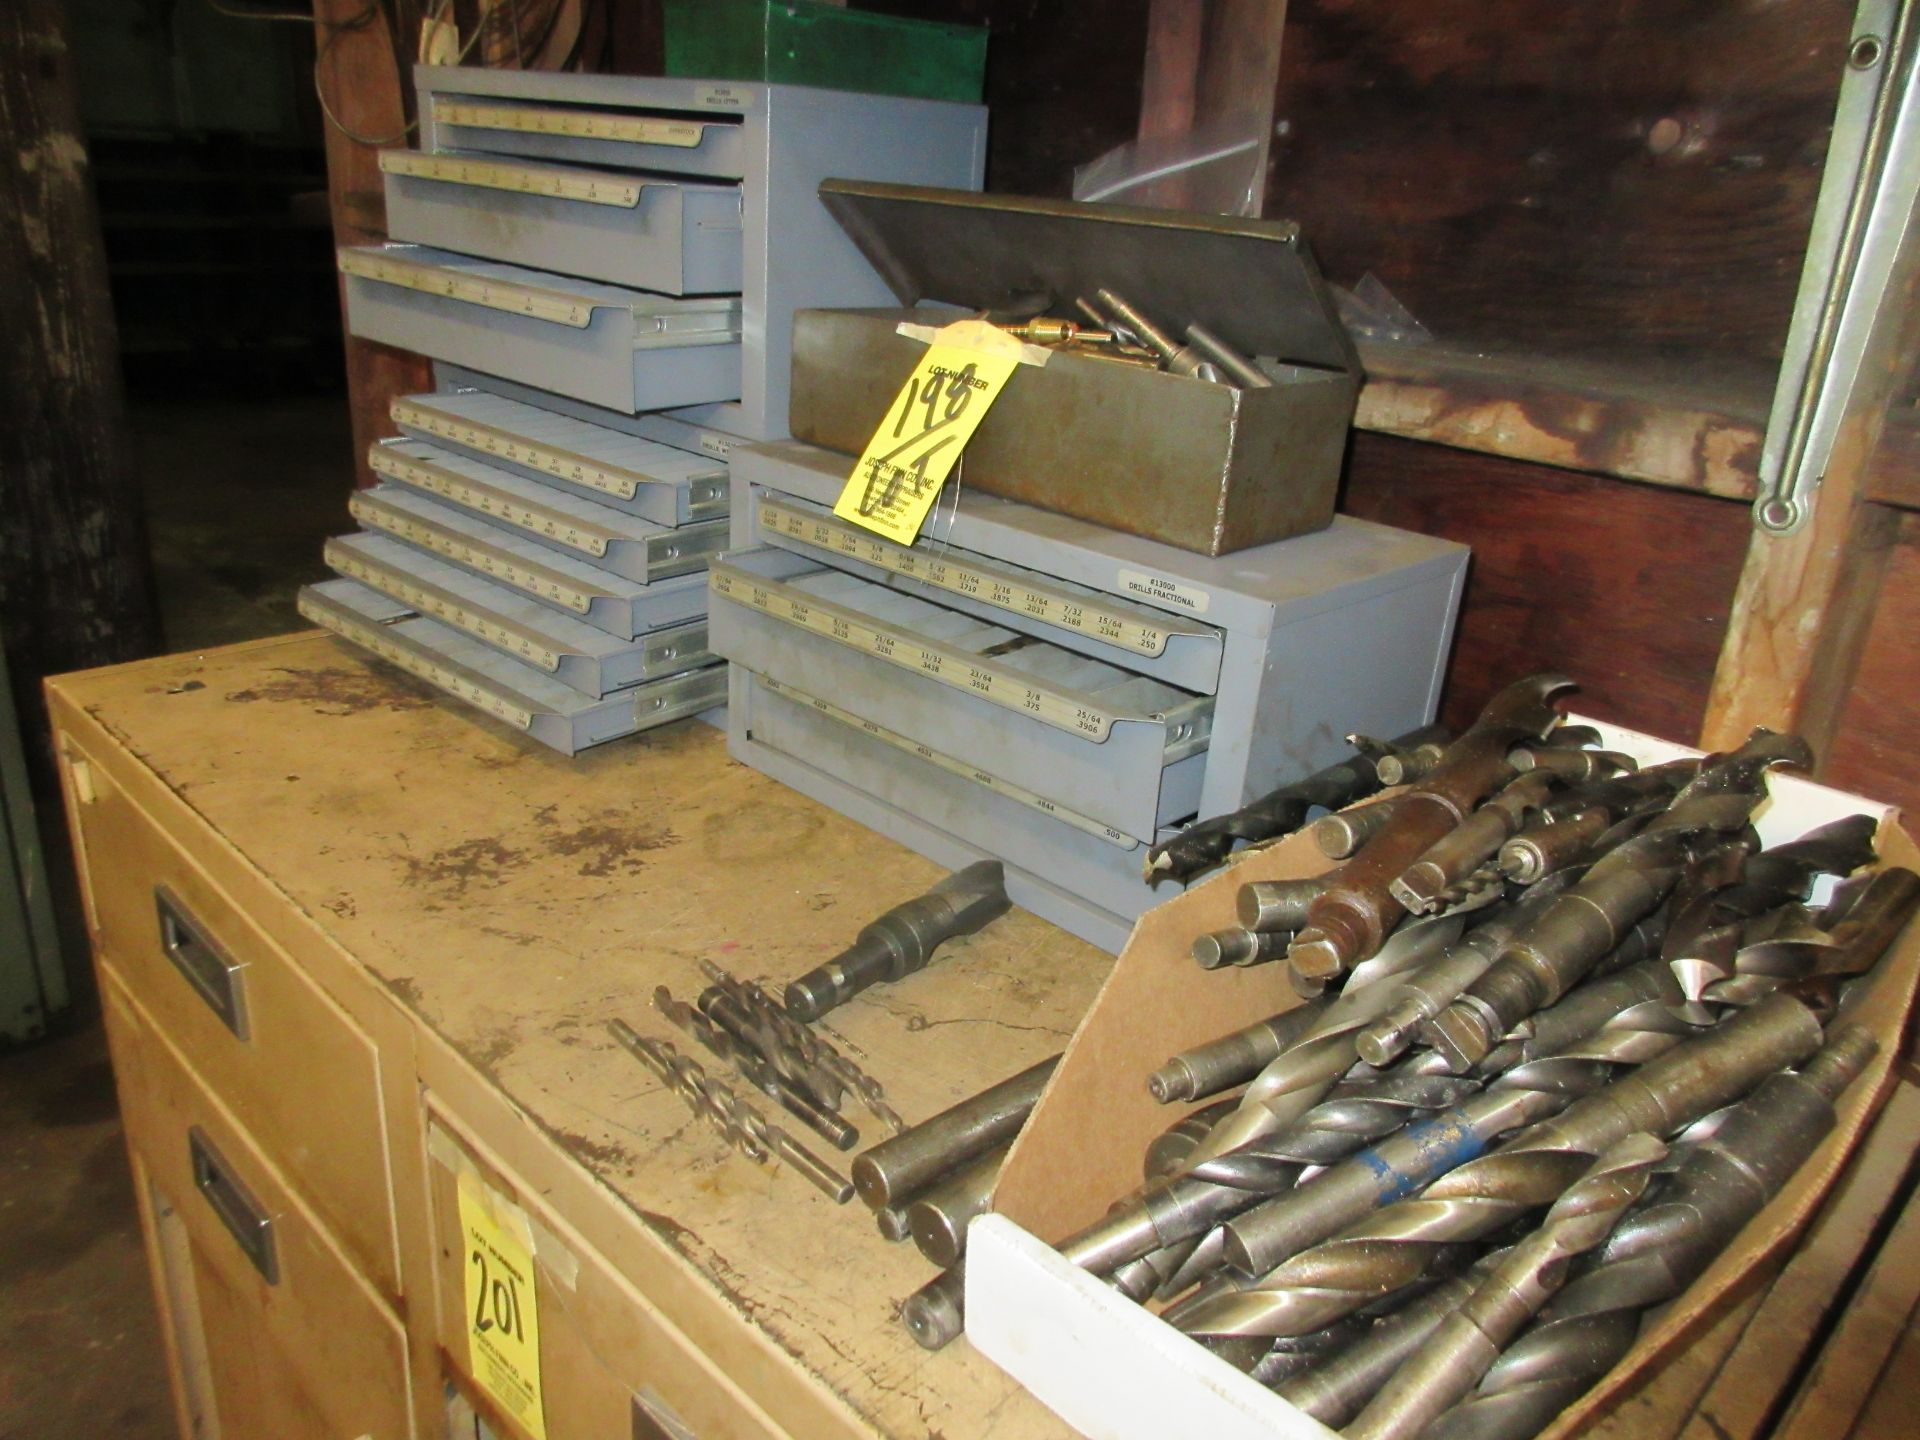 LOT (3) Drill Index Cabinets, Drills, Mills, Reamers, in Cabinets & on Shelf - Image 2 of 5